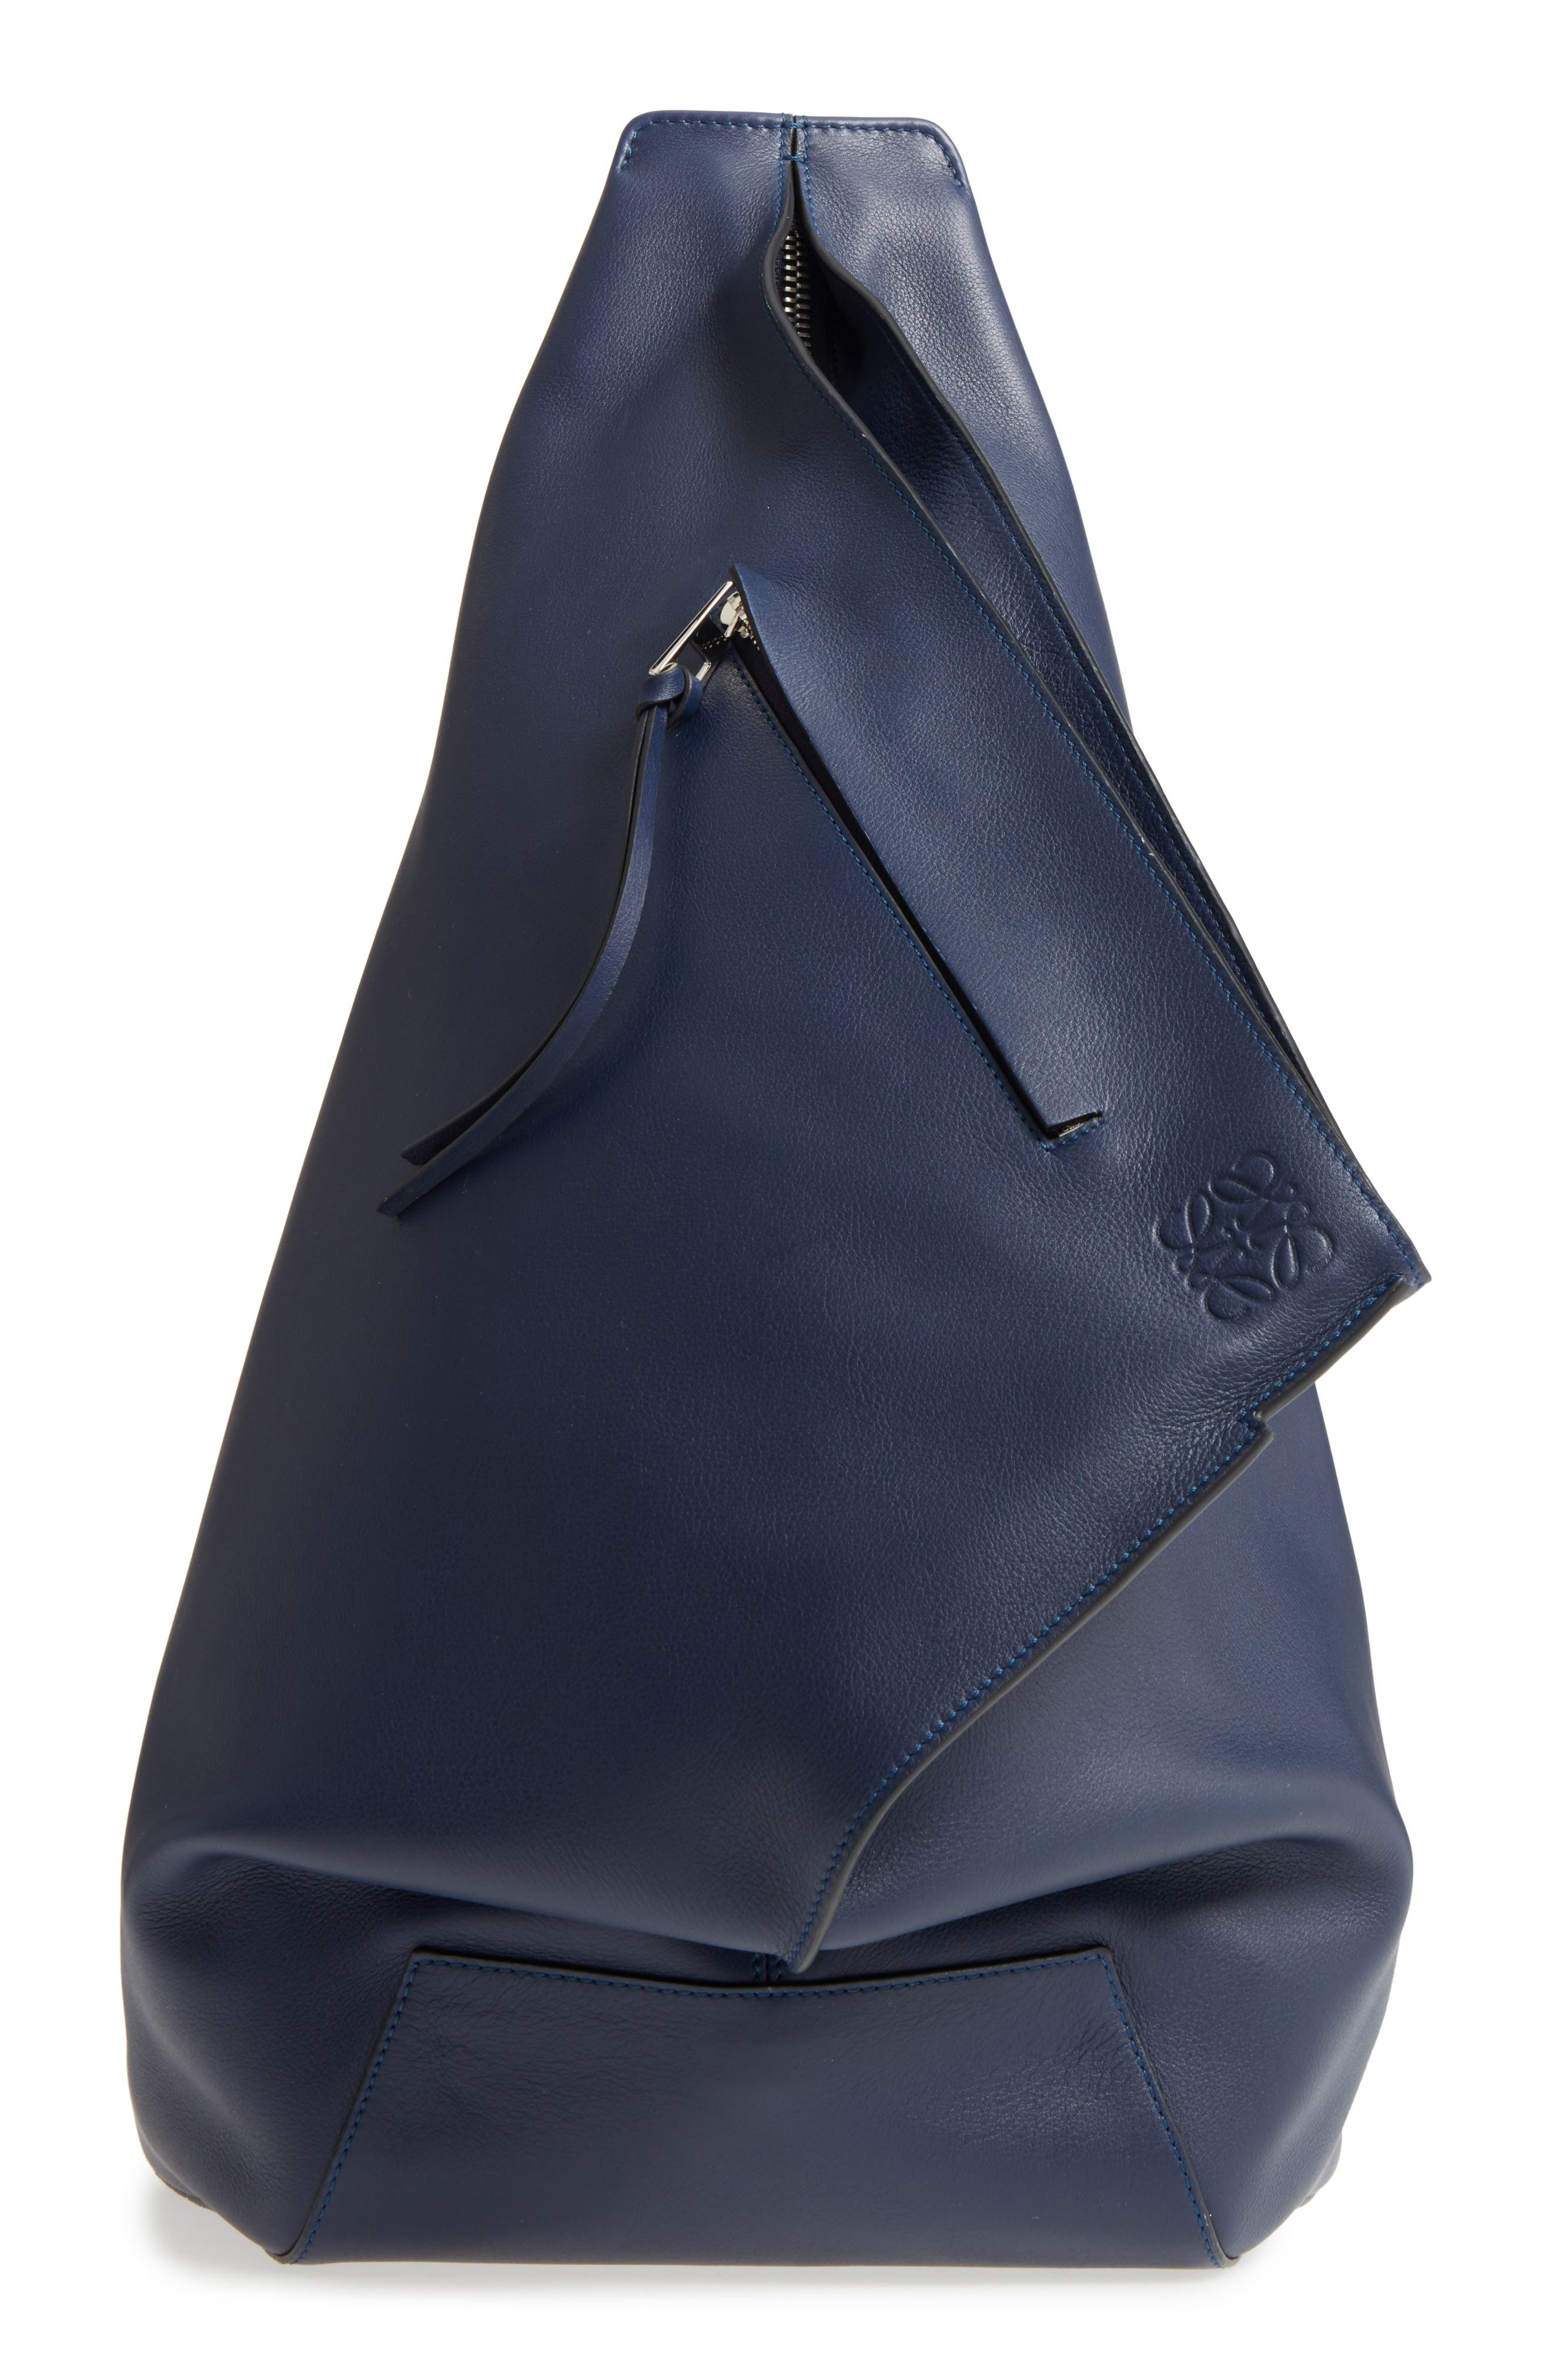 Anton Leather Sling Pack,                             Main thumbnail 1, color,                             Navy Blue